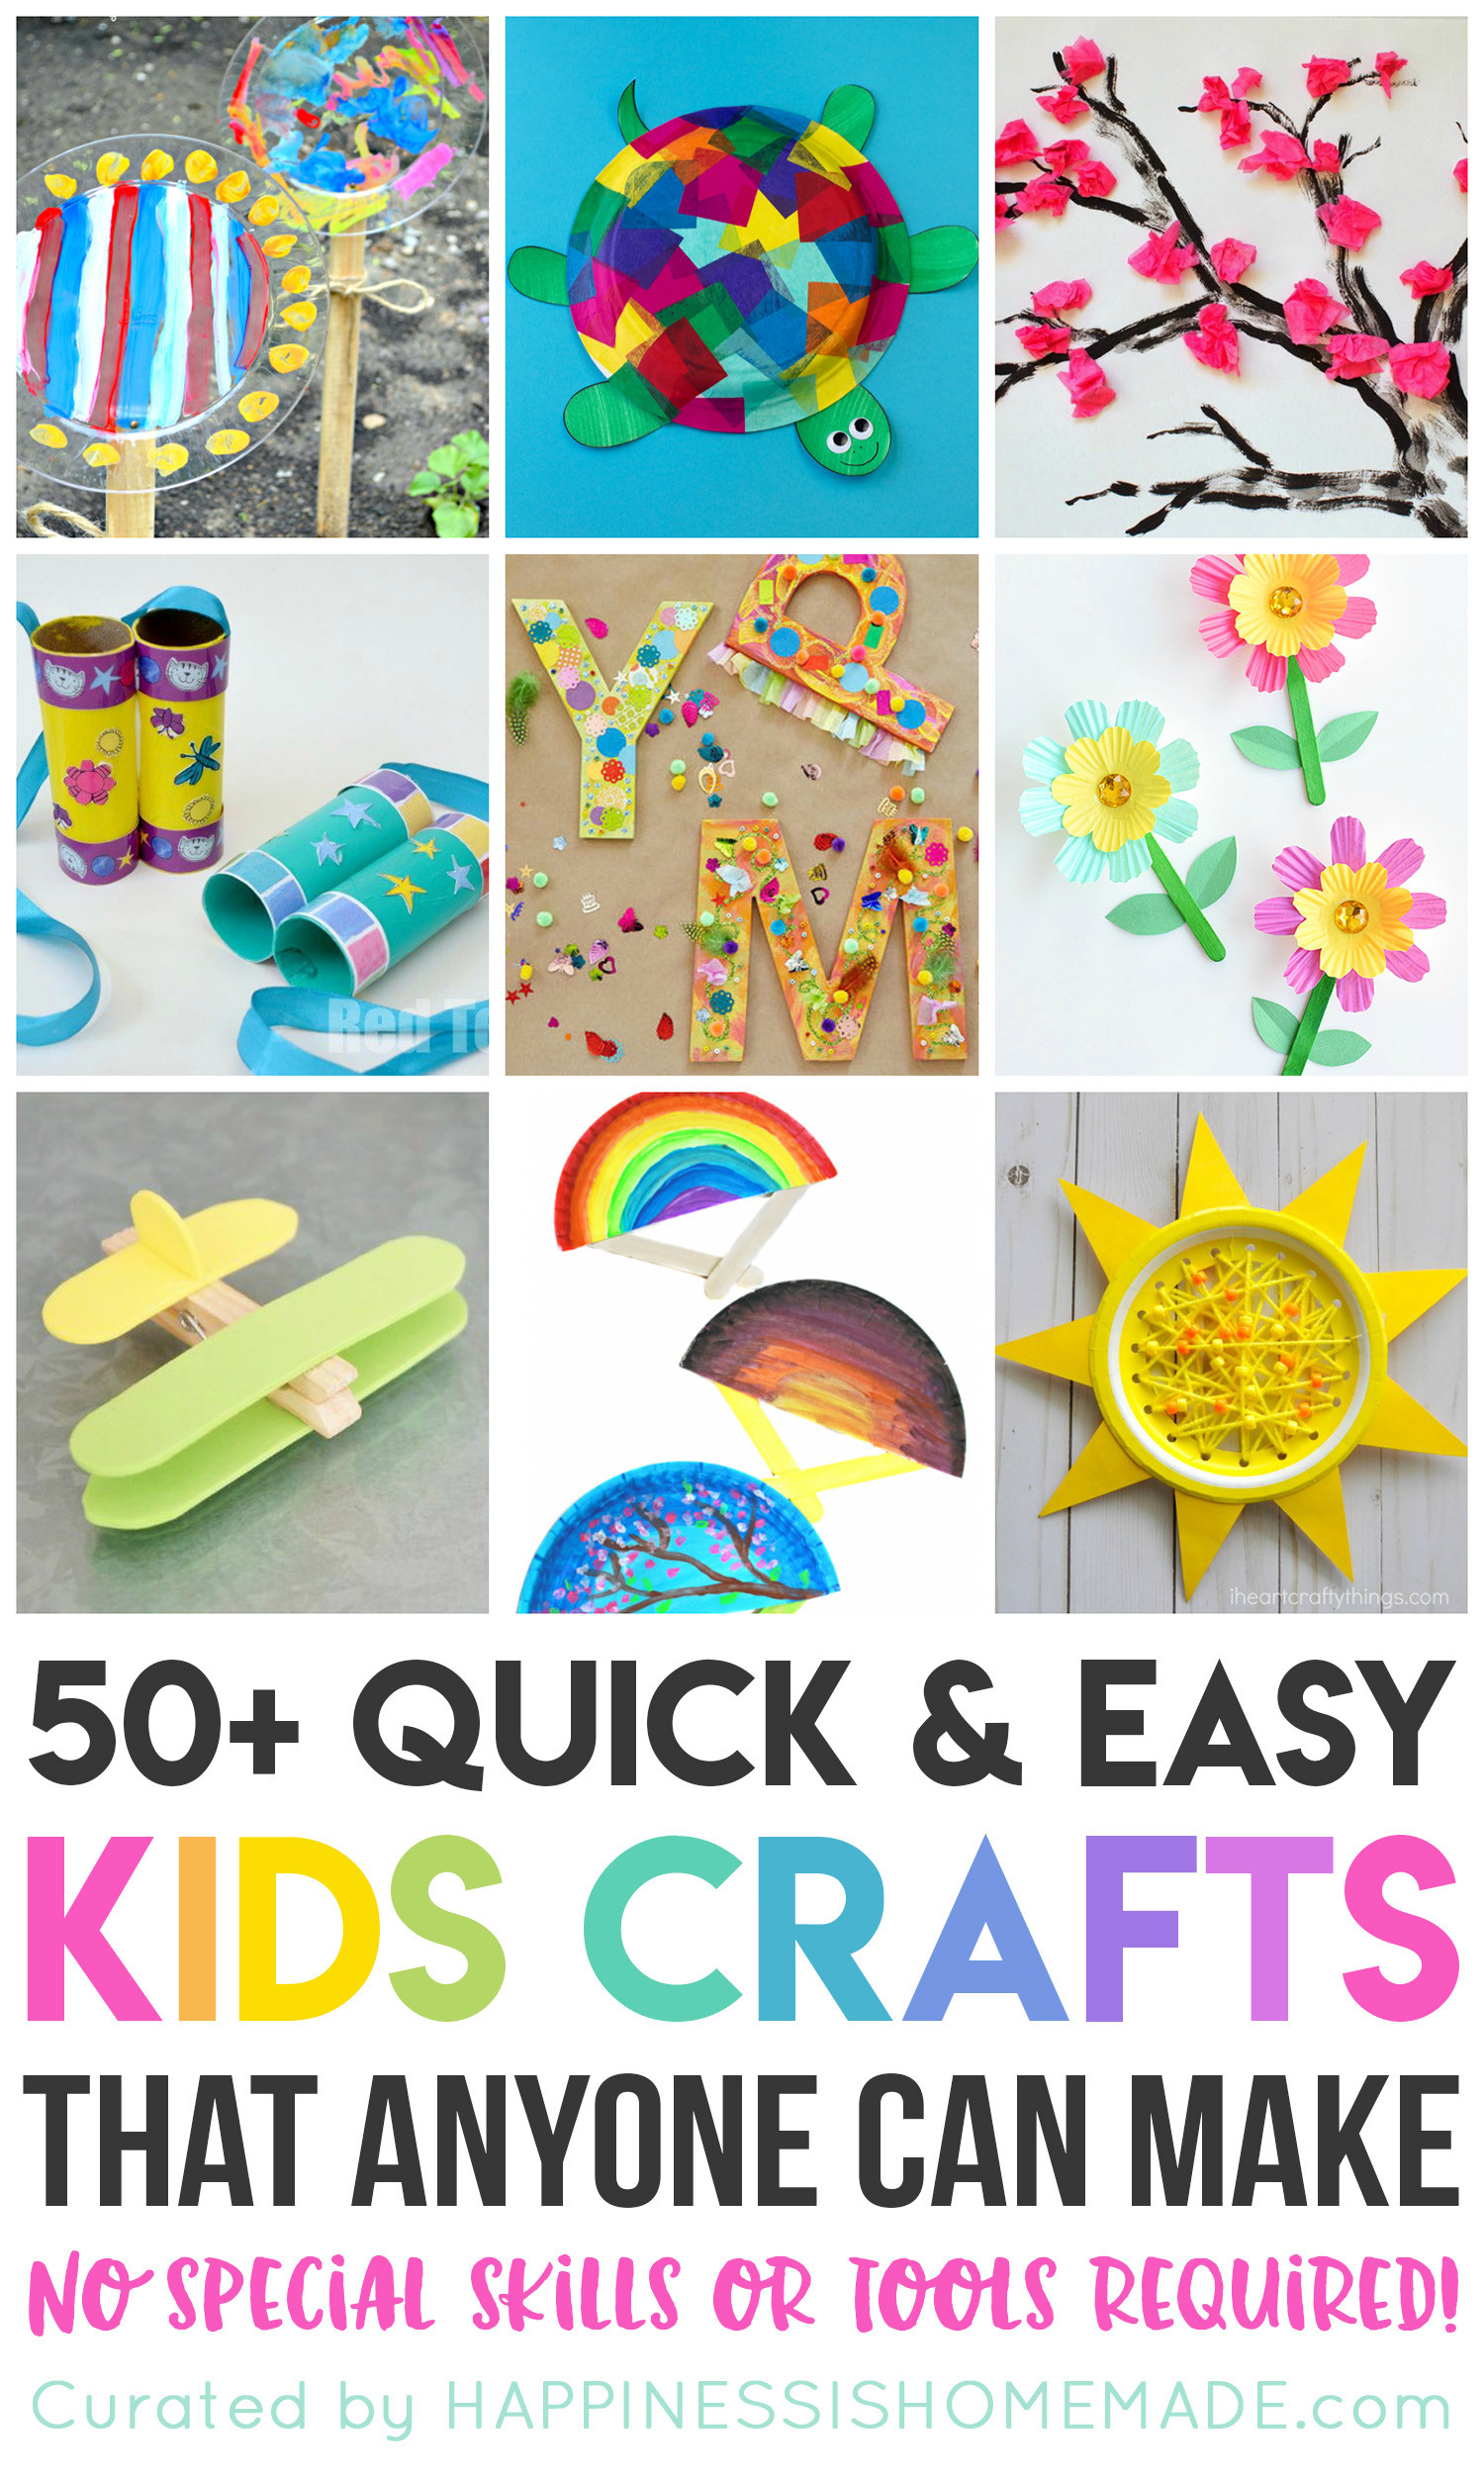 Best ideas about Art Craft For Kids . Save or Pin Quick & Easy Halloween Crafts for Kids Happiness is Homemade Now.